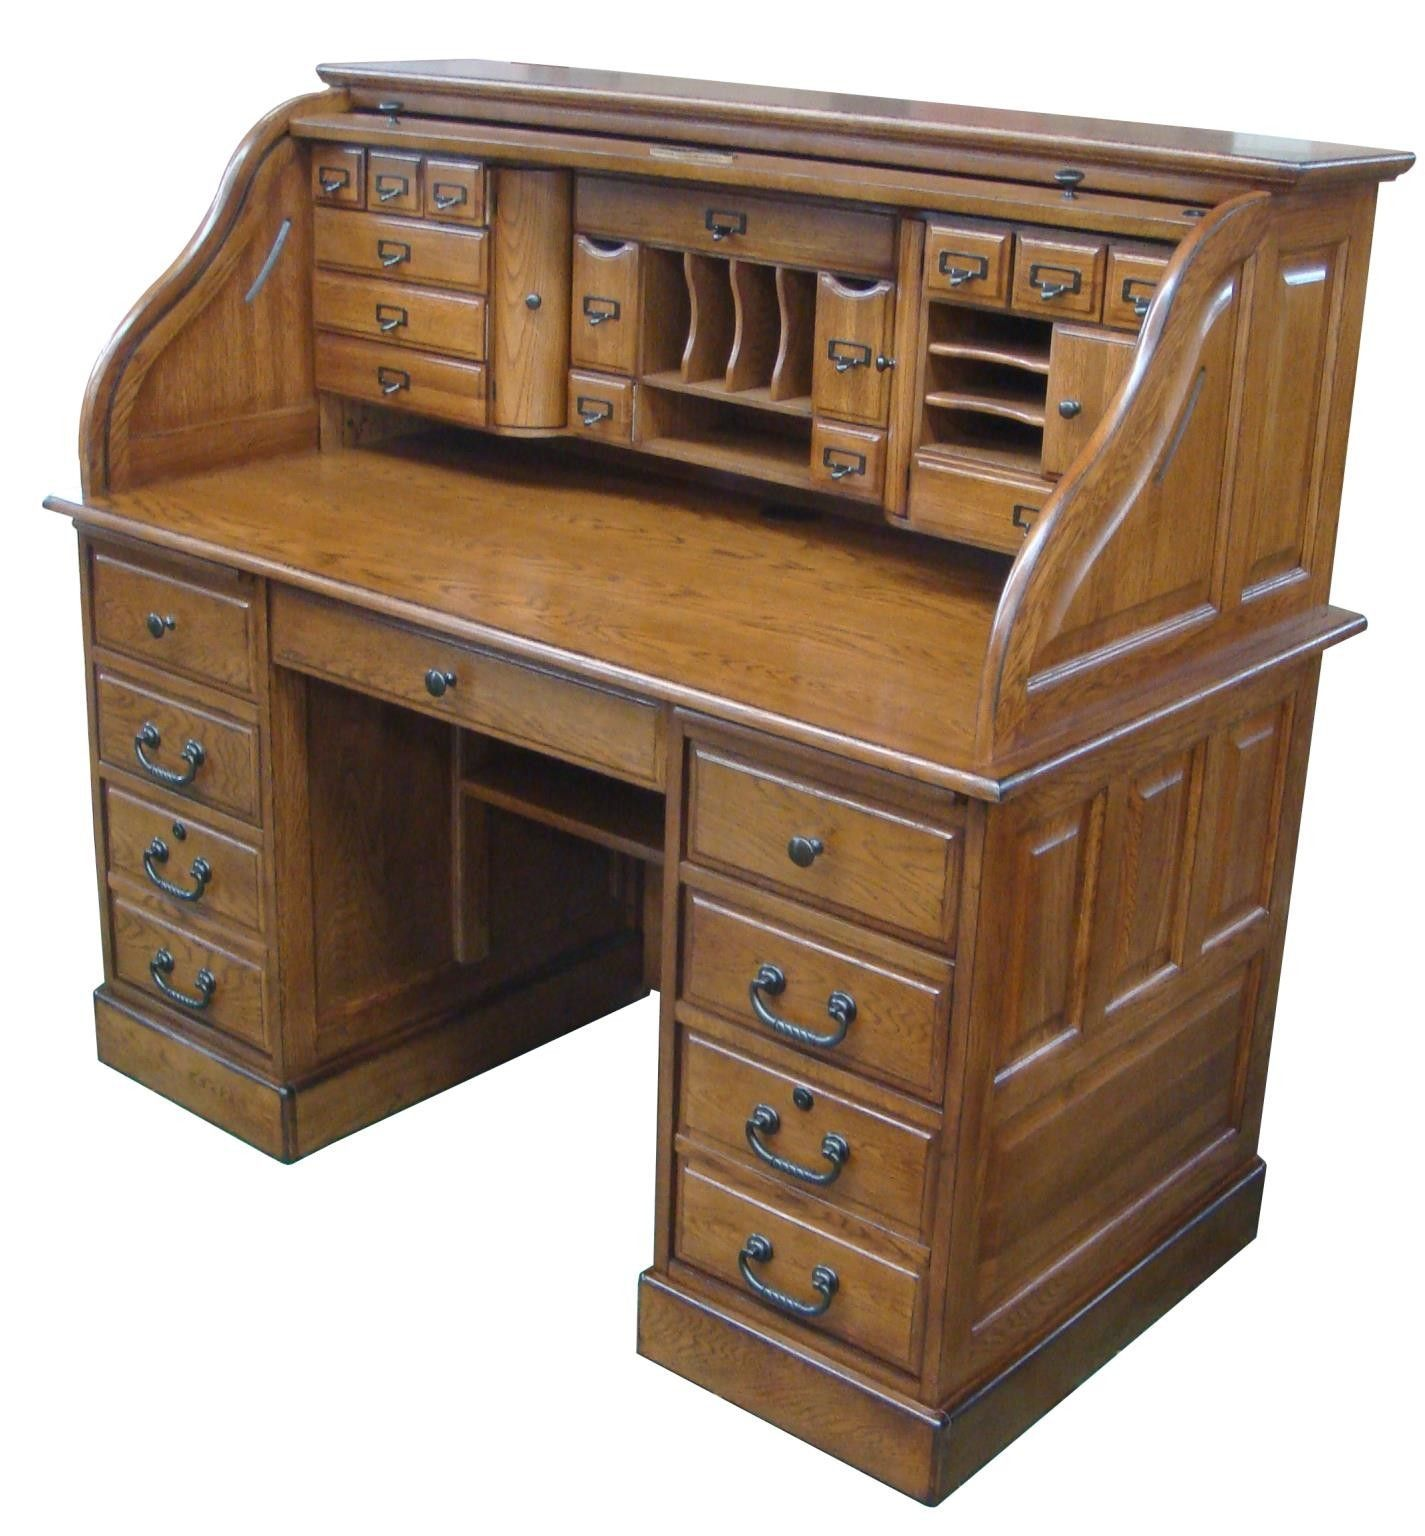 Chelsea Home Marlin Deluxe Roll Top Credenza Desk Finish: Burnished Walnut